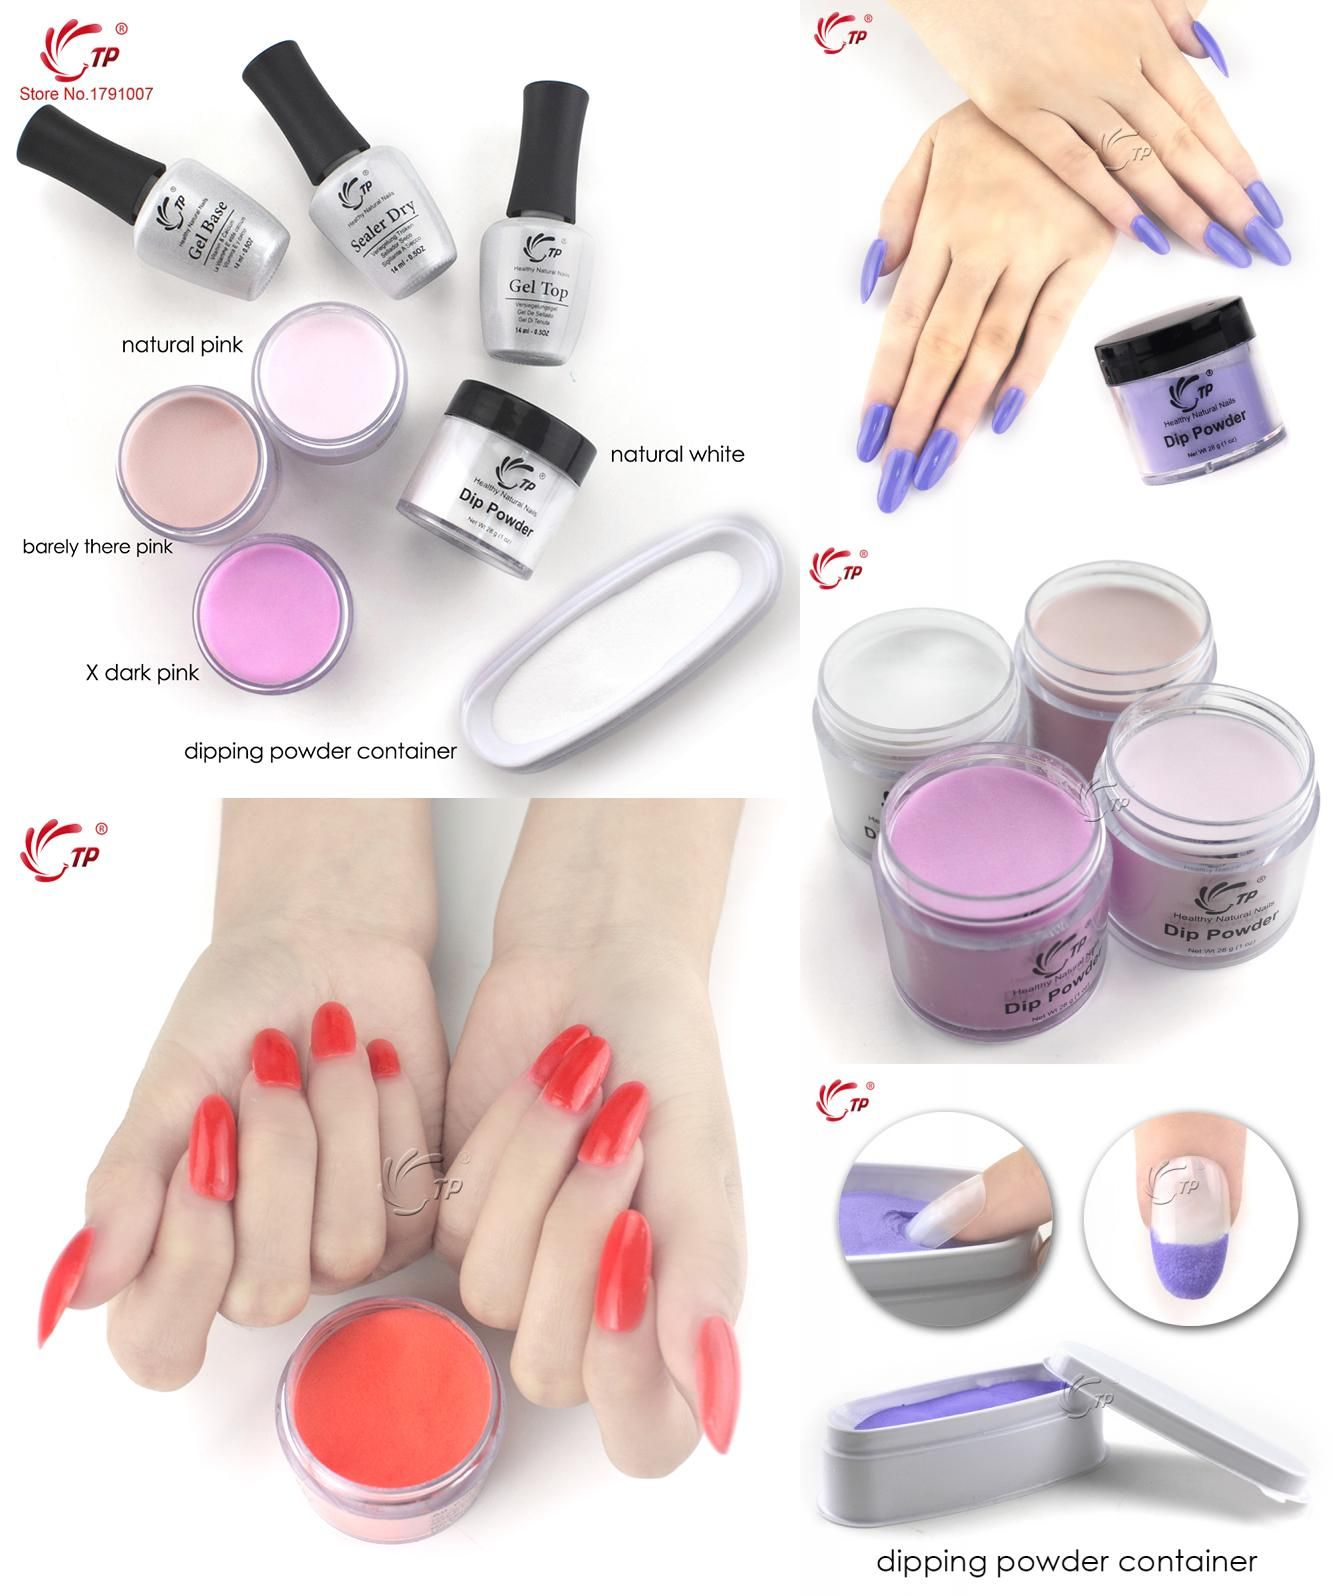 Visit to Buy] 28g/Box French White Nude Dipping Powder Without Lamp ...